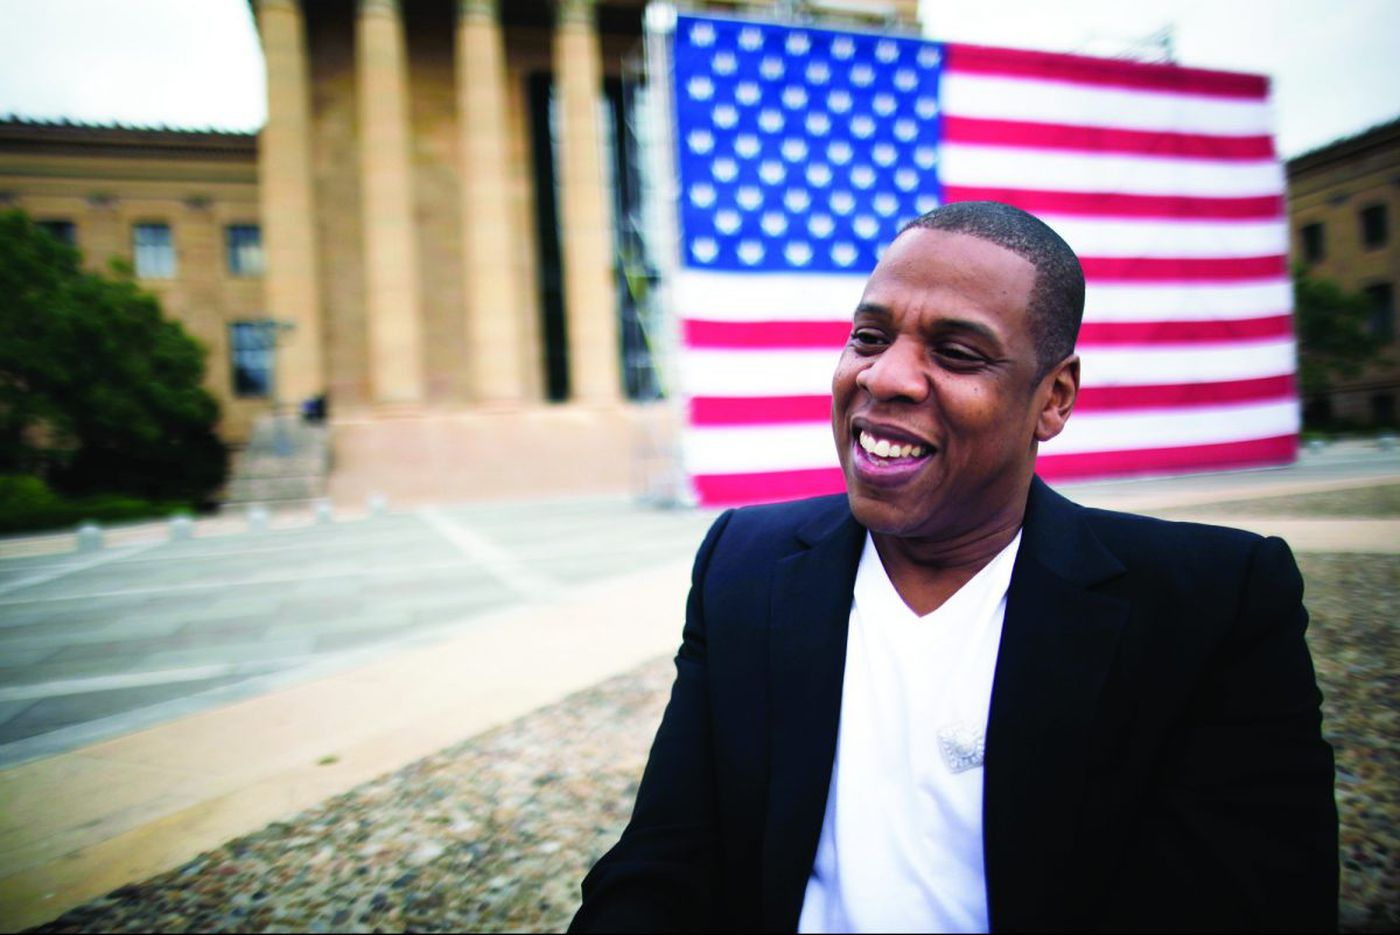 Jay-Z, older and still relevant, headlines Made in America once more